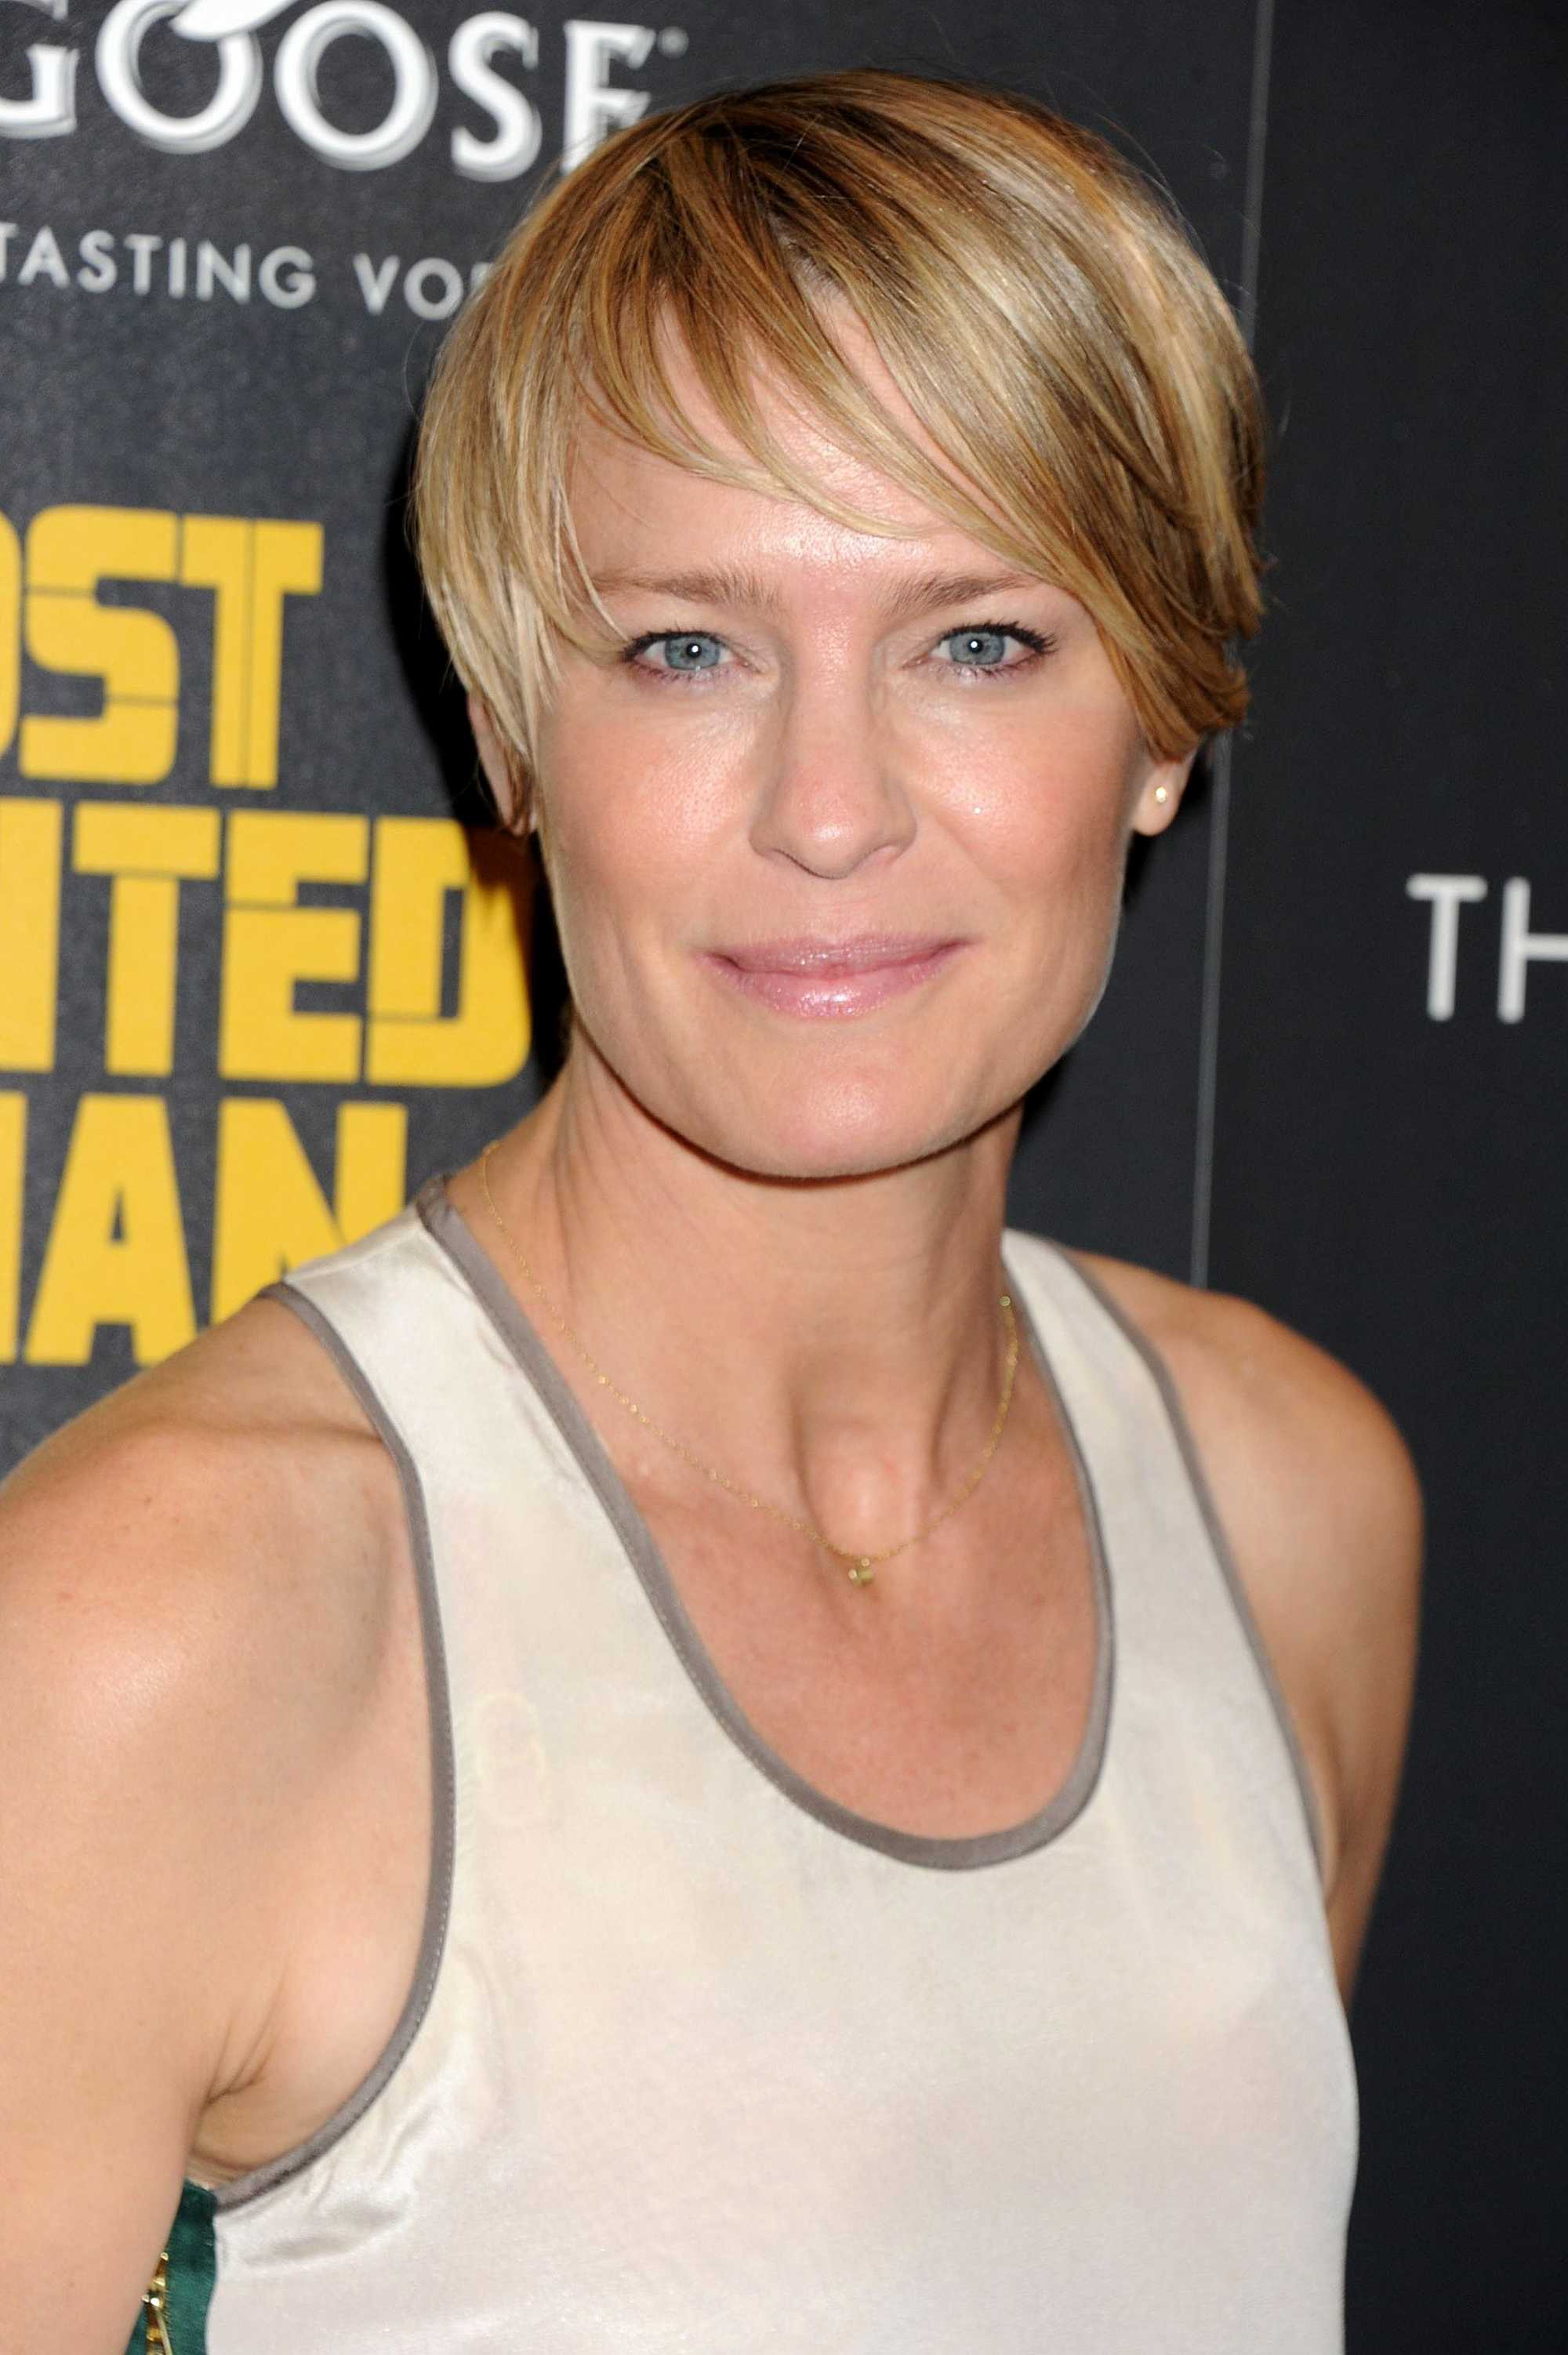 Claire Underwood Hair : claire, underwood, Instagram's, Claire, Underwood-inspired, Hairstyles